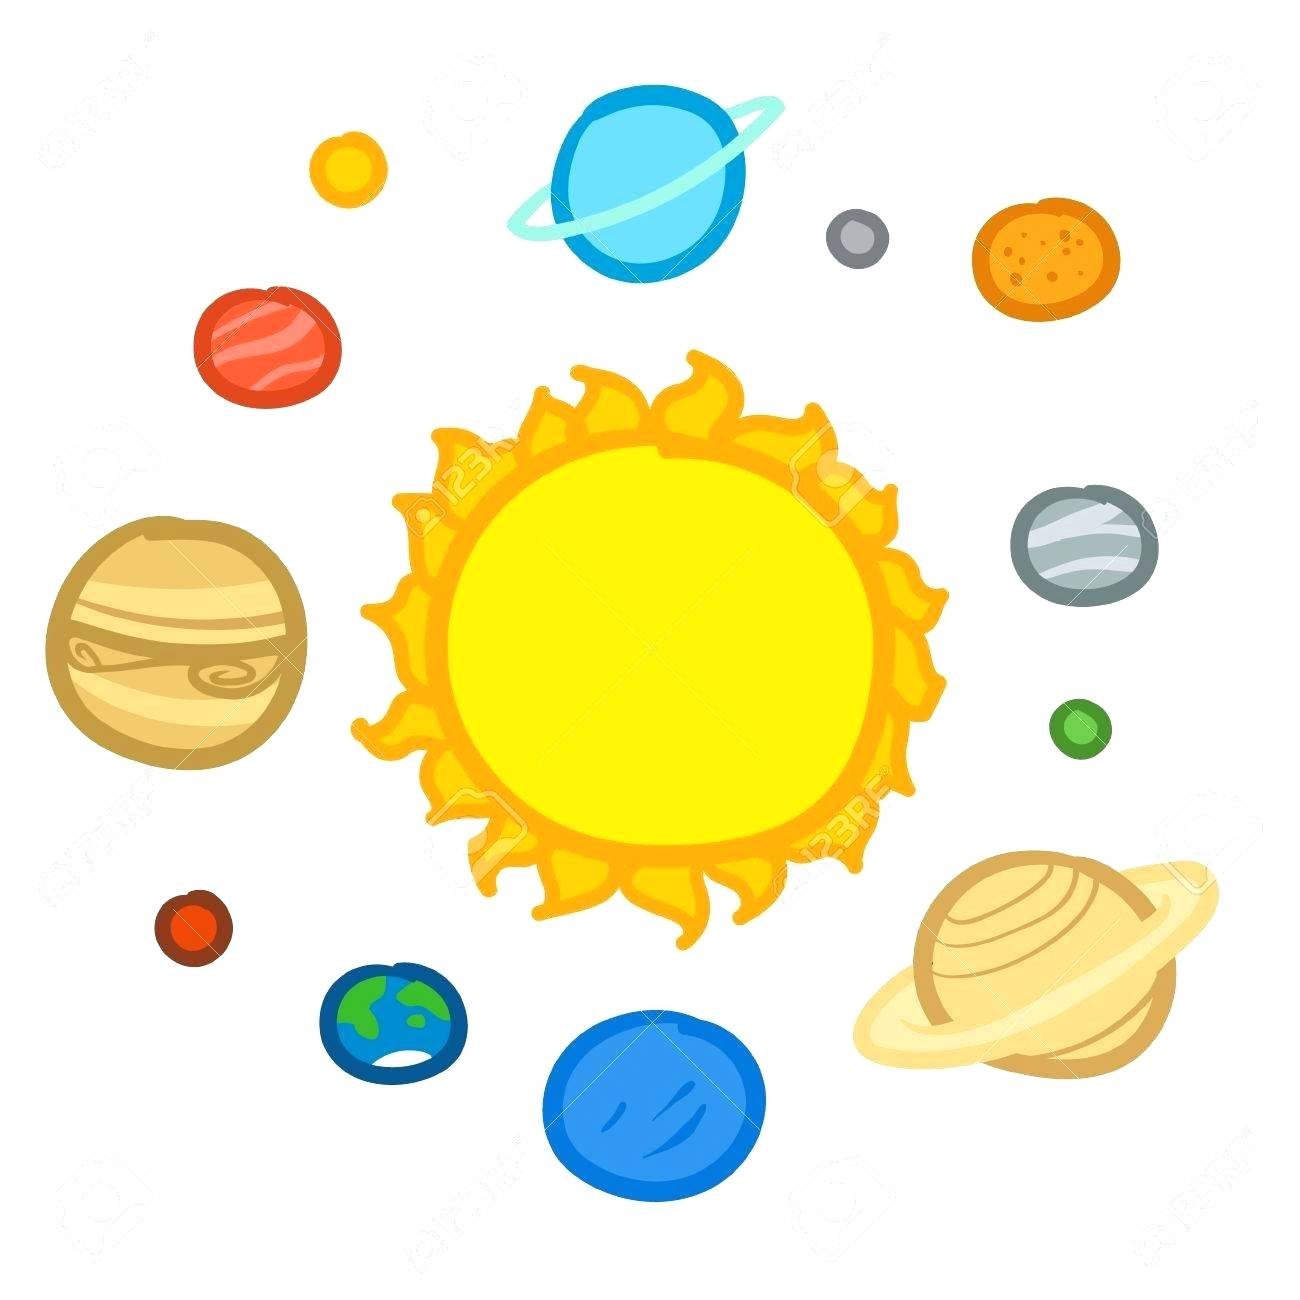 Solar System Png, png collections at sccpre.cat.